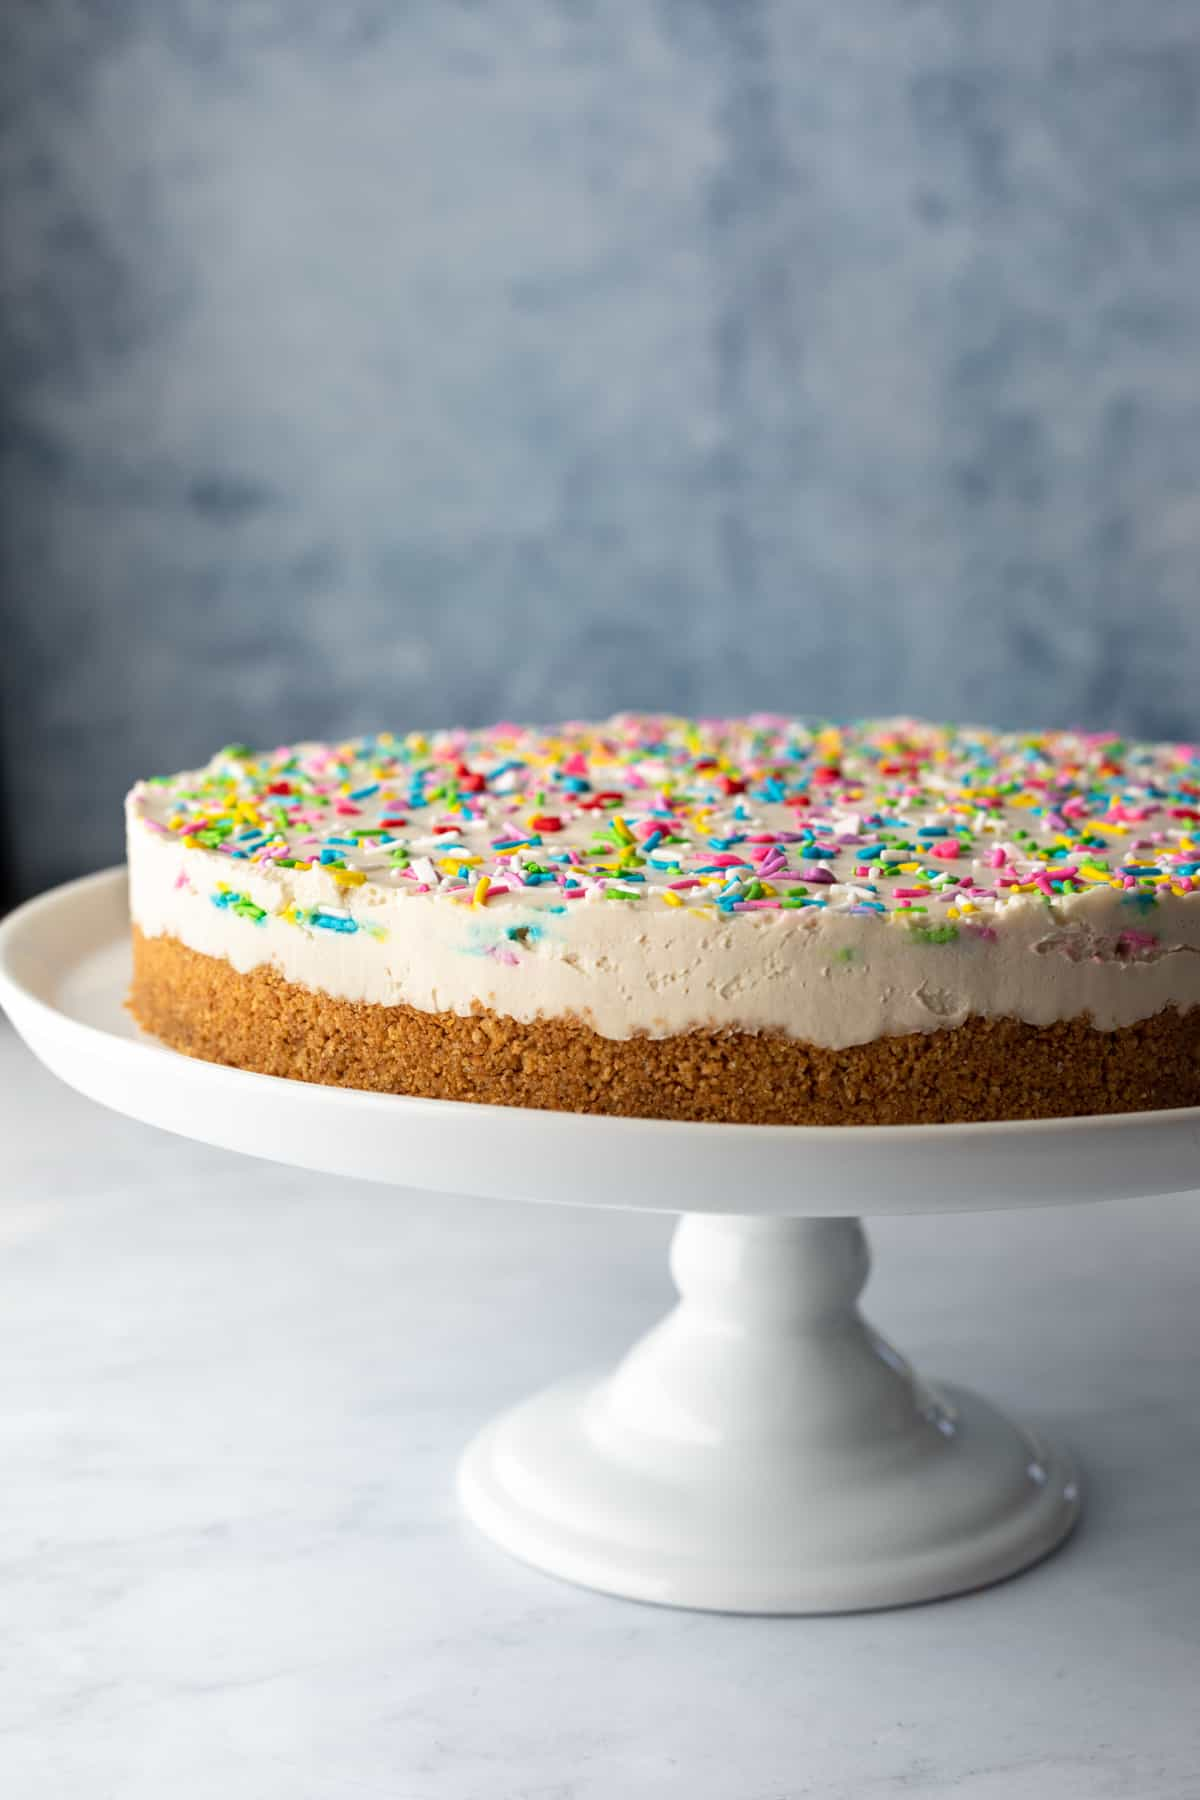 whole cheesecake topped with colorful vegan sprinkles on a white cake stand against a blue background